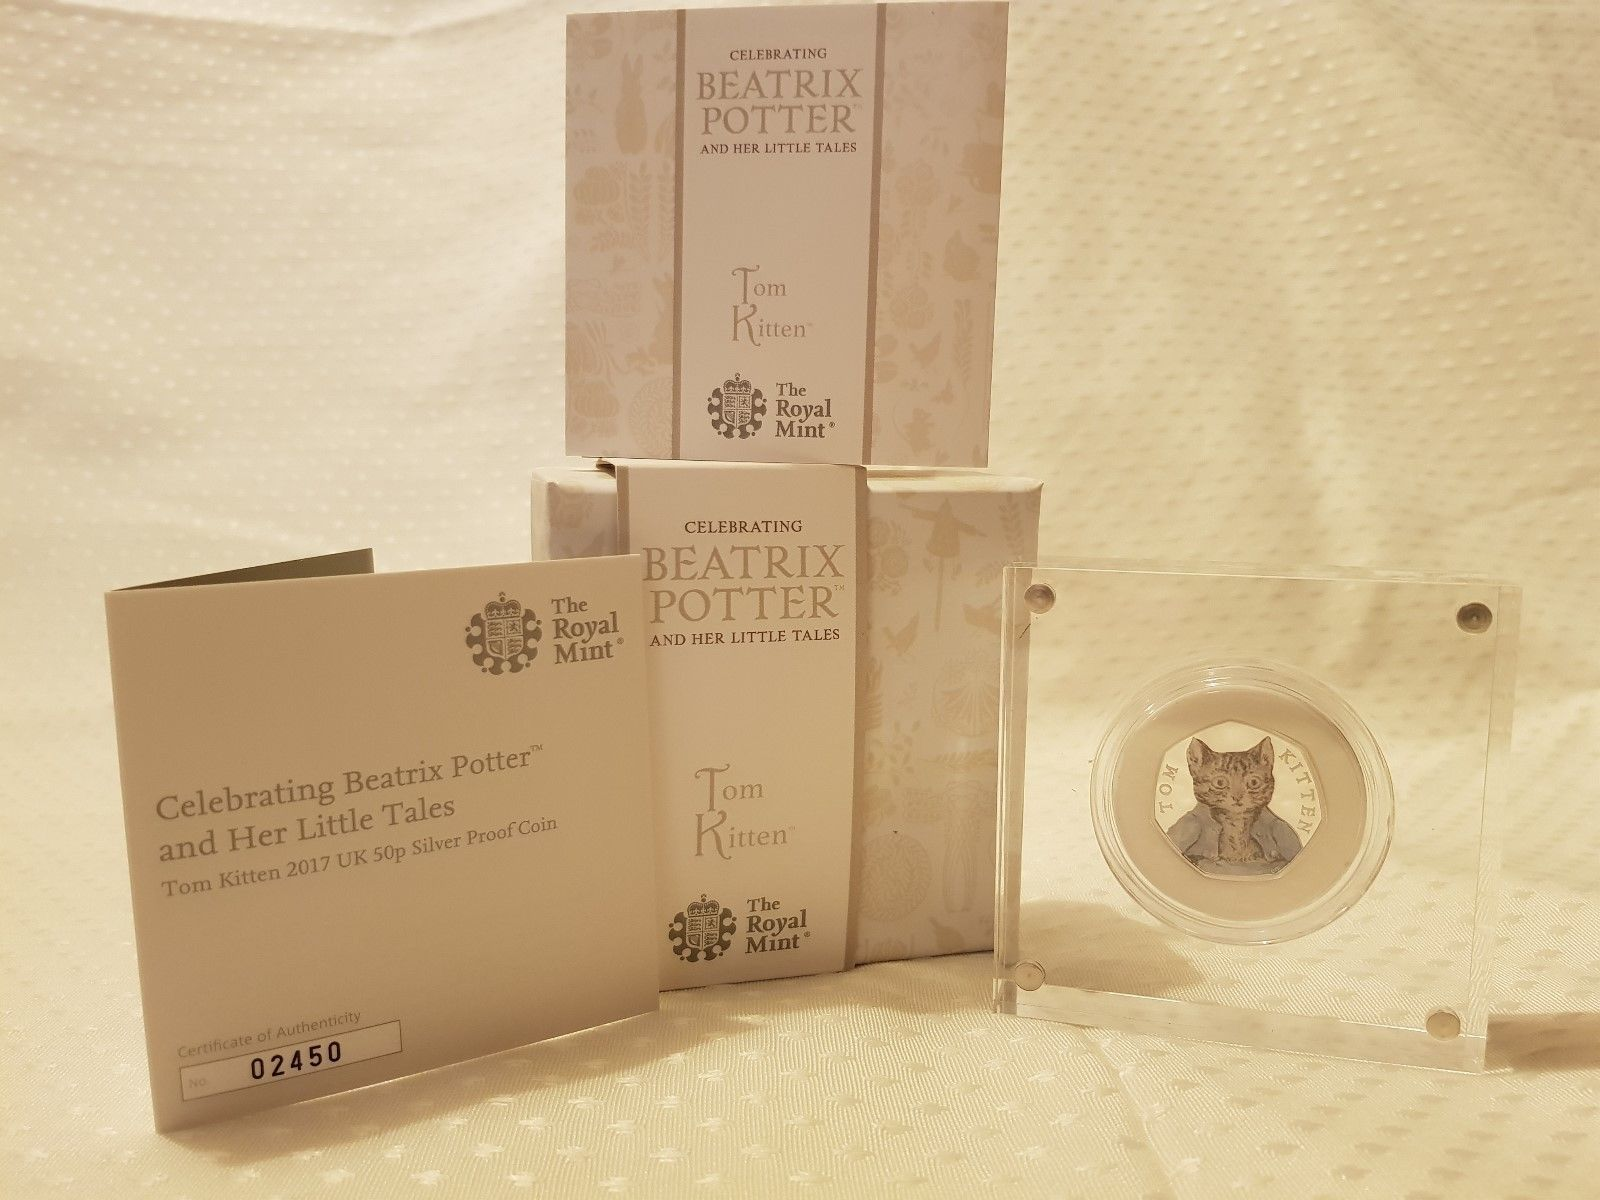 Tom Kitten 2017 UK 50p Silver Proof Coin - SOLD OUT AT ROYAL MINT